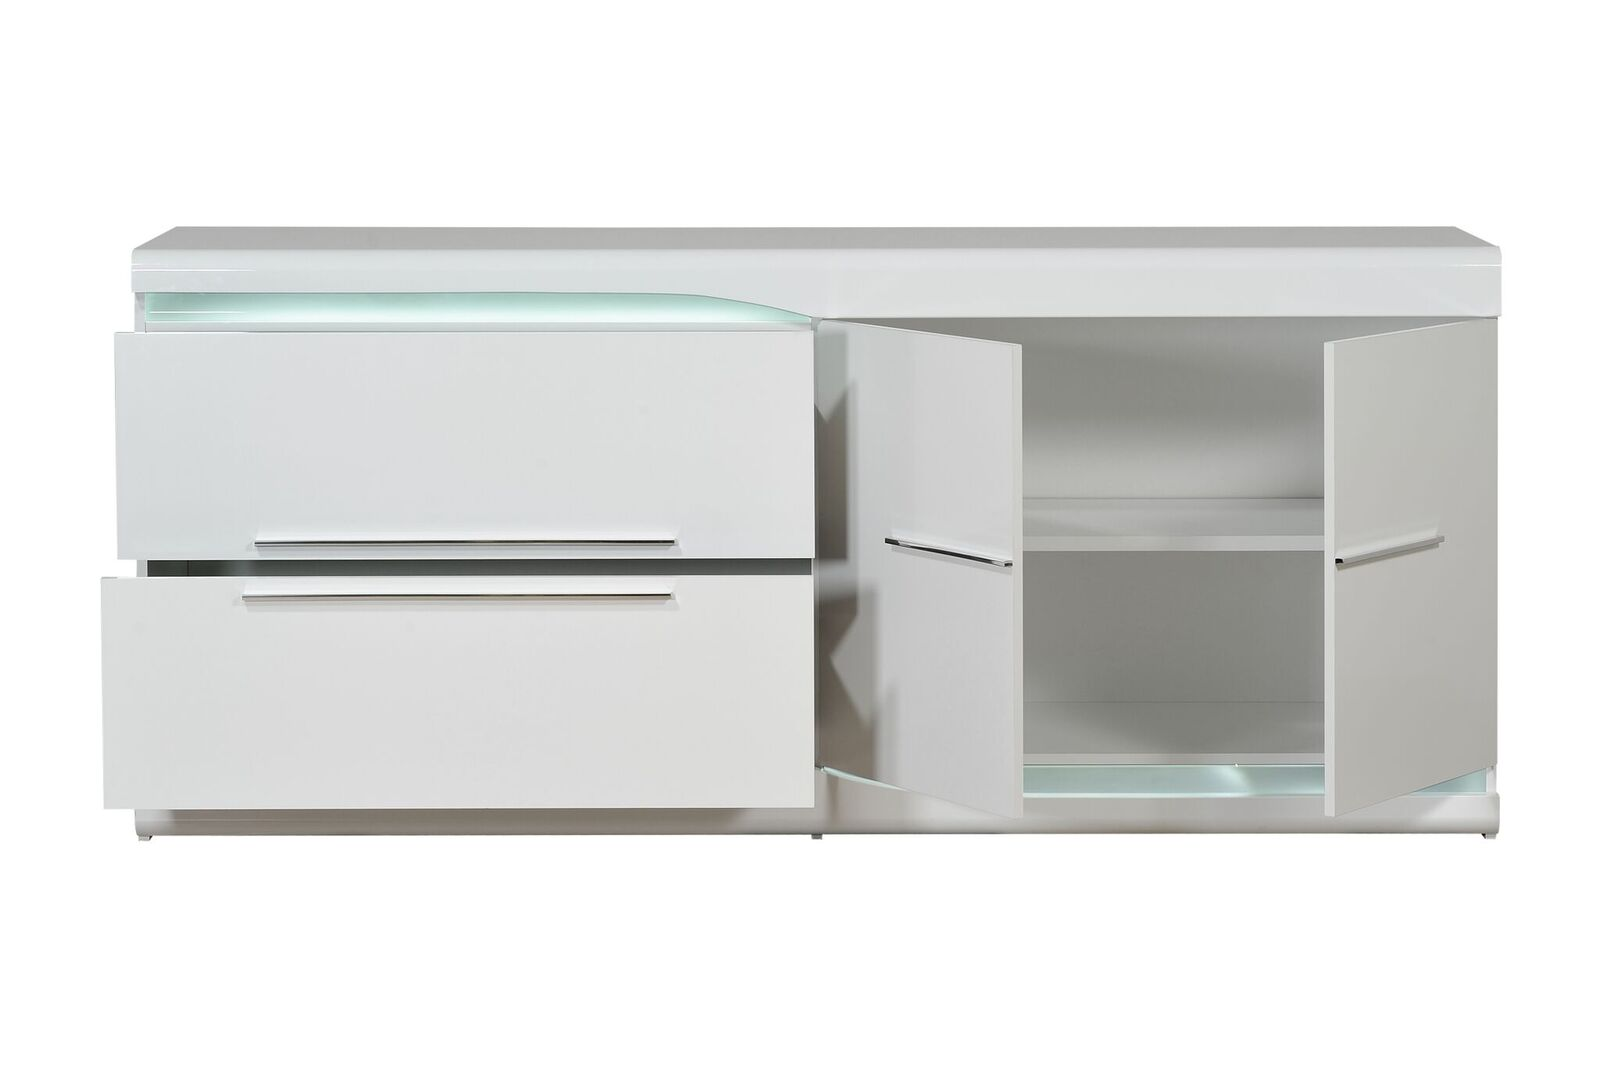 Meuble Tv Ovio - Ovio White Sideboard With Led Lights Modern Sideboards Fads[mjhdah]http://brockfc.com/c/awesome-meuble-tv-blanc-tiroirs-meuble-tv-4-niches-2-tiroirs-en-bois-l185xp42xh31cm-glossy.jpg